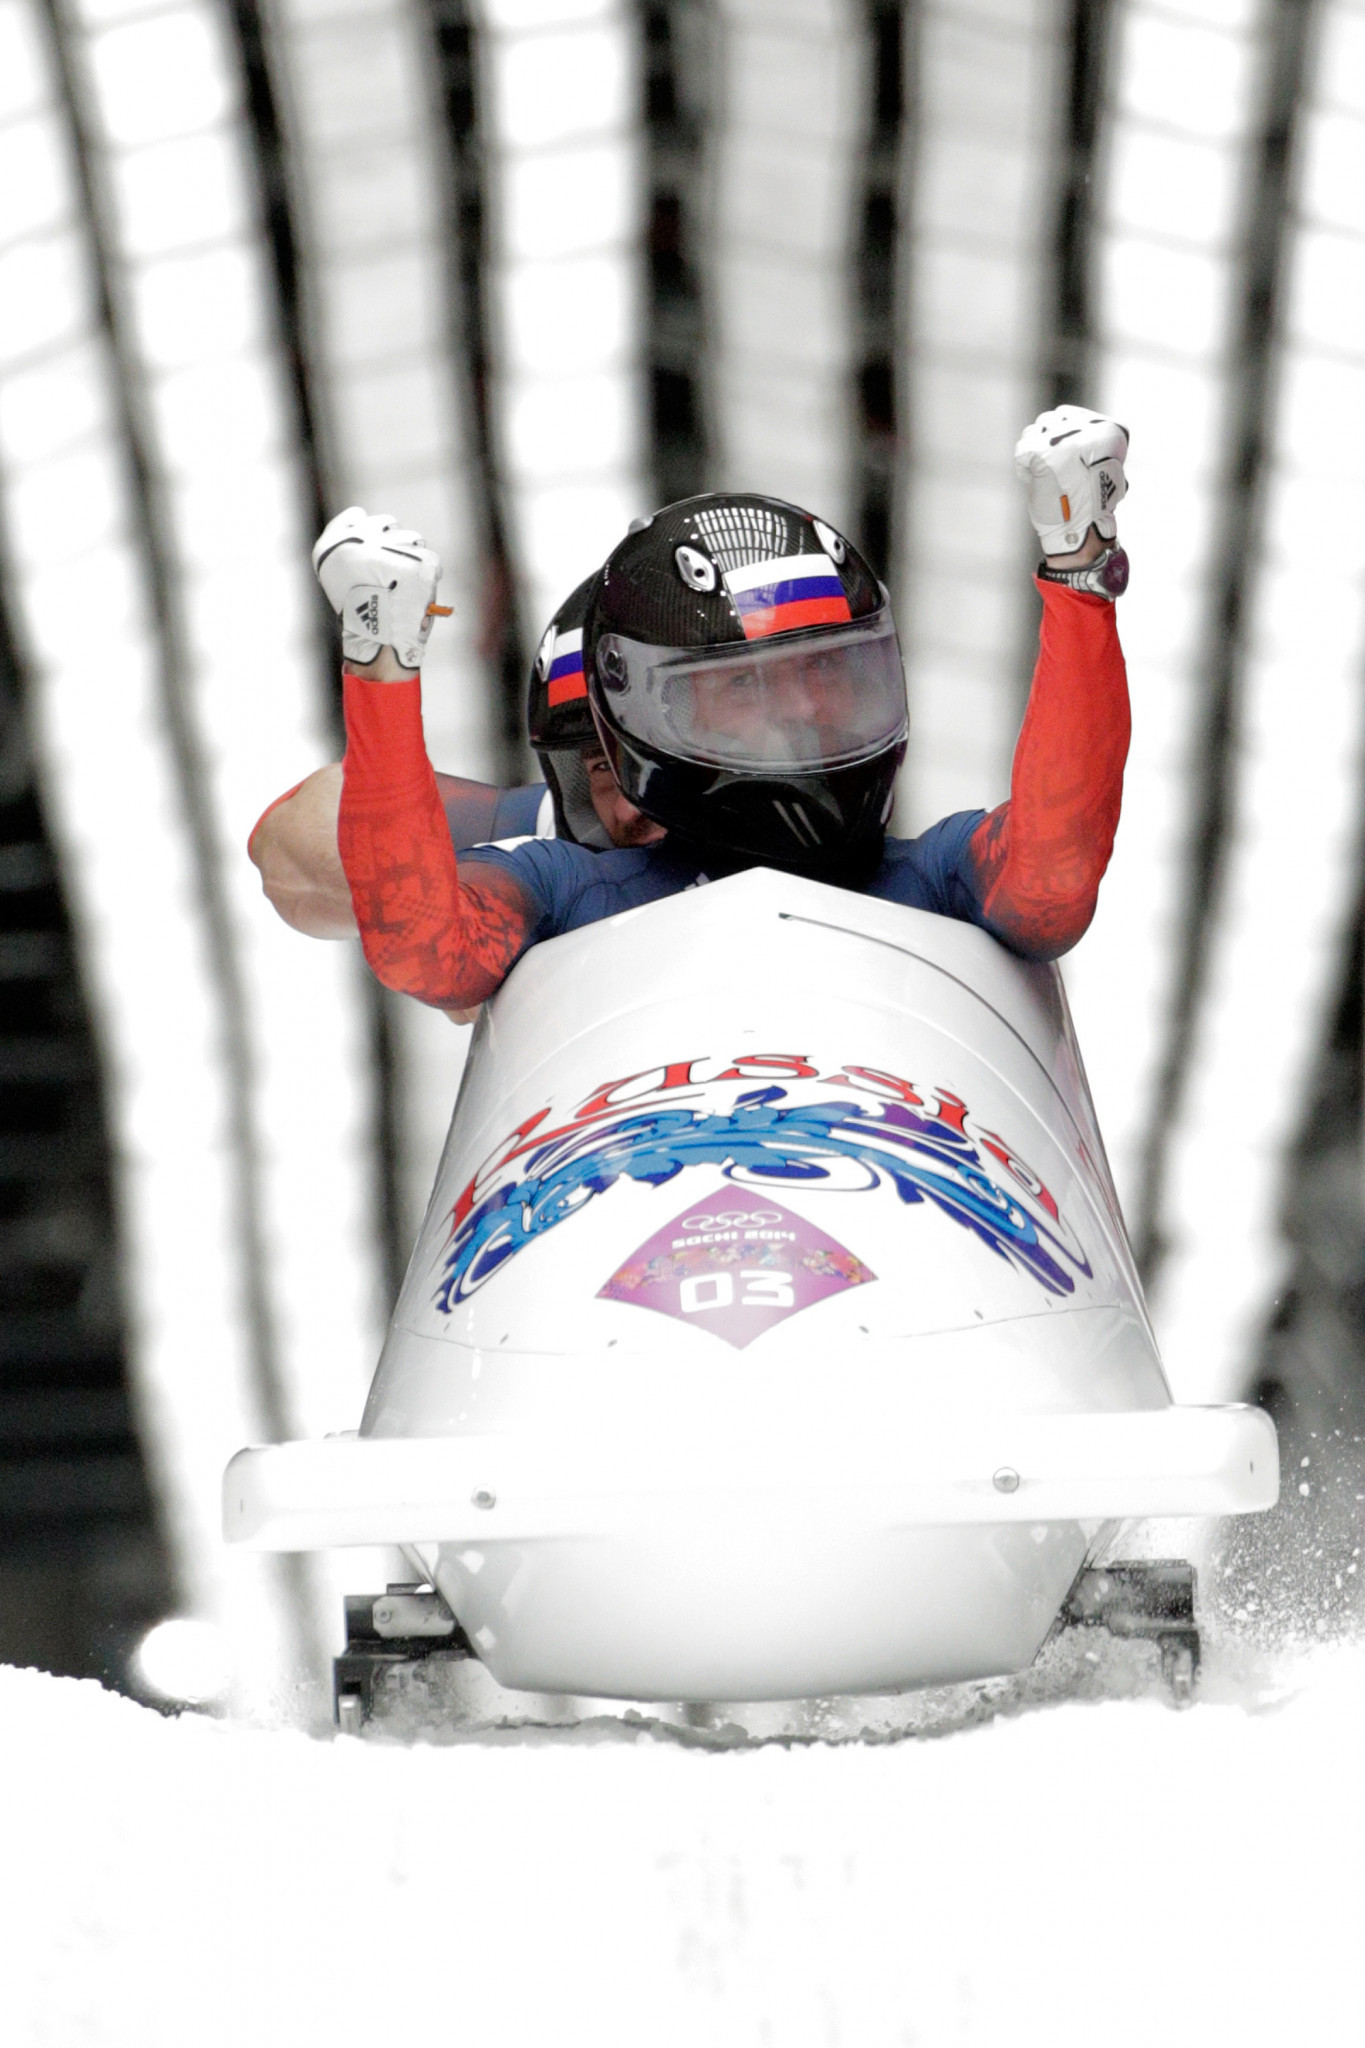 Alexander Zubkov and Alexey Voevoda won the Olympic gold medals in the two-man bobsleigh at Sochi 2014 but were subsequently stripped of the title for doping and are now banned  ©Getty Images